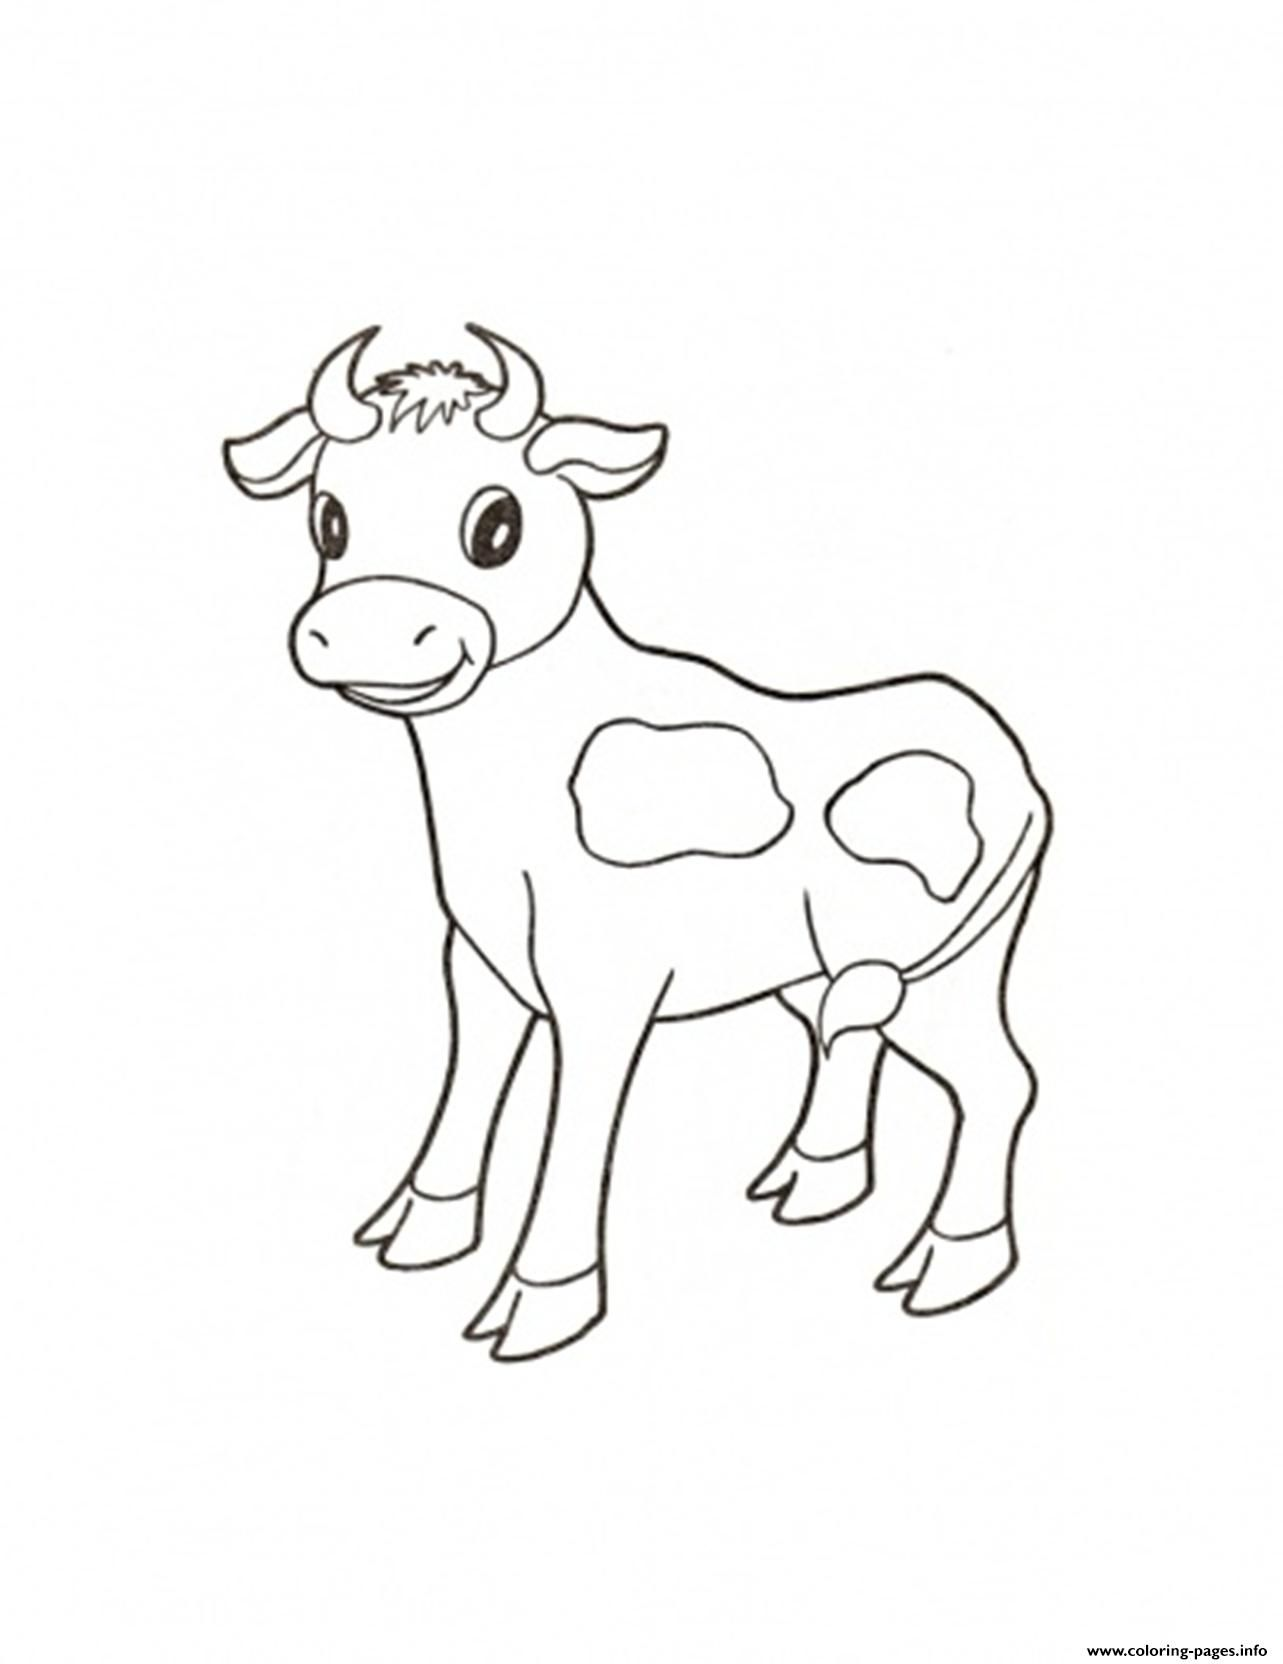 19+ Easy farm animal coloring pages ideas